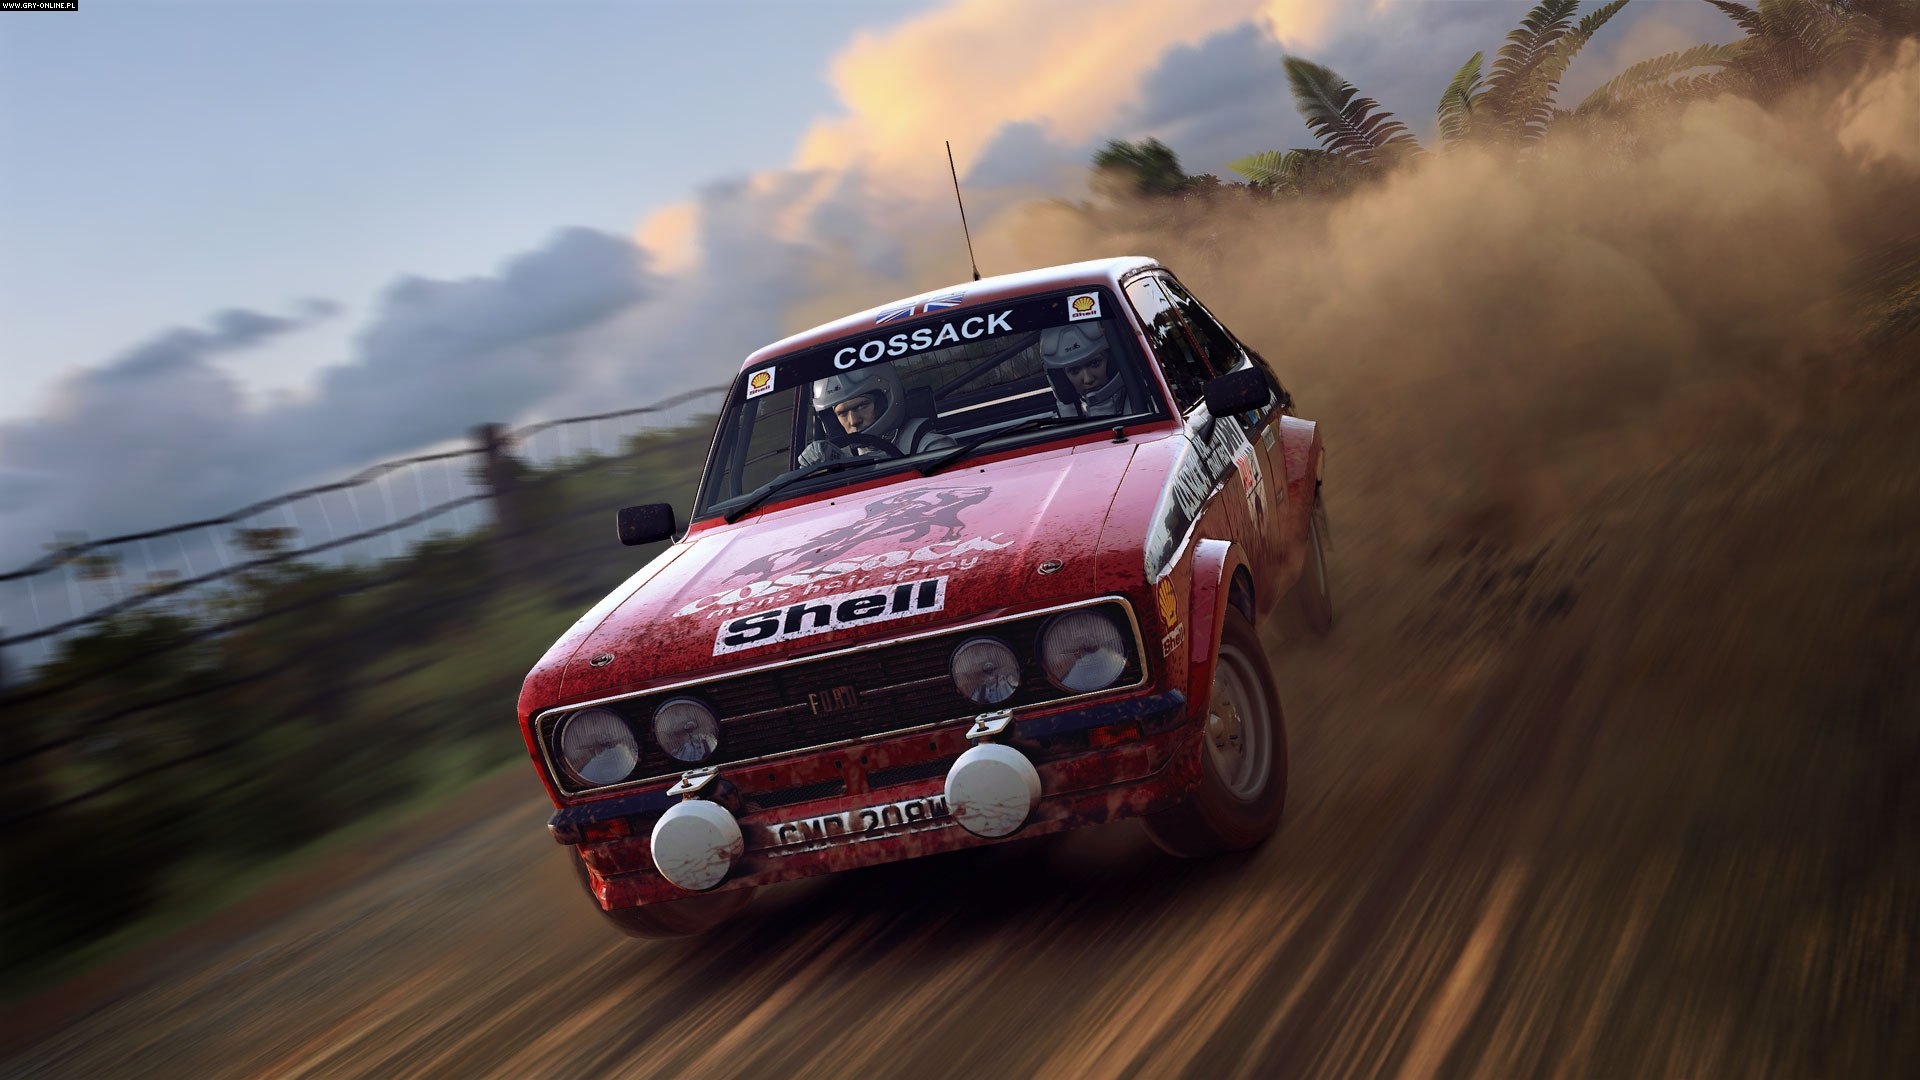 DiRT Rally 2.0 PC, PS4, XONE Games Image 3/21, Codemasters Software